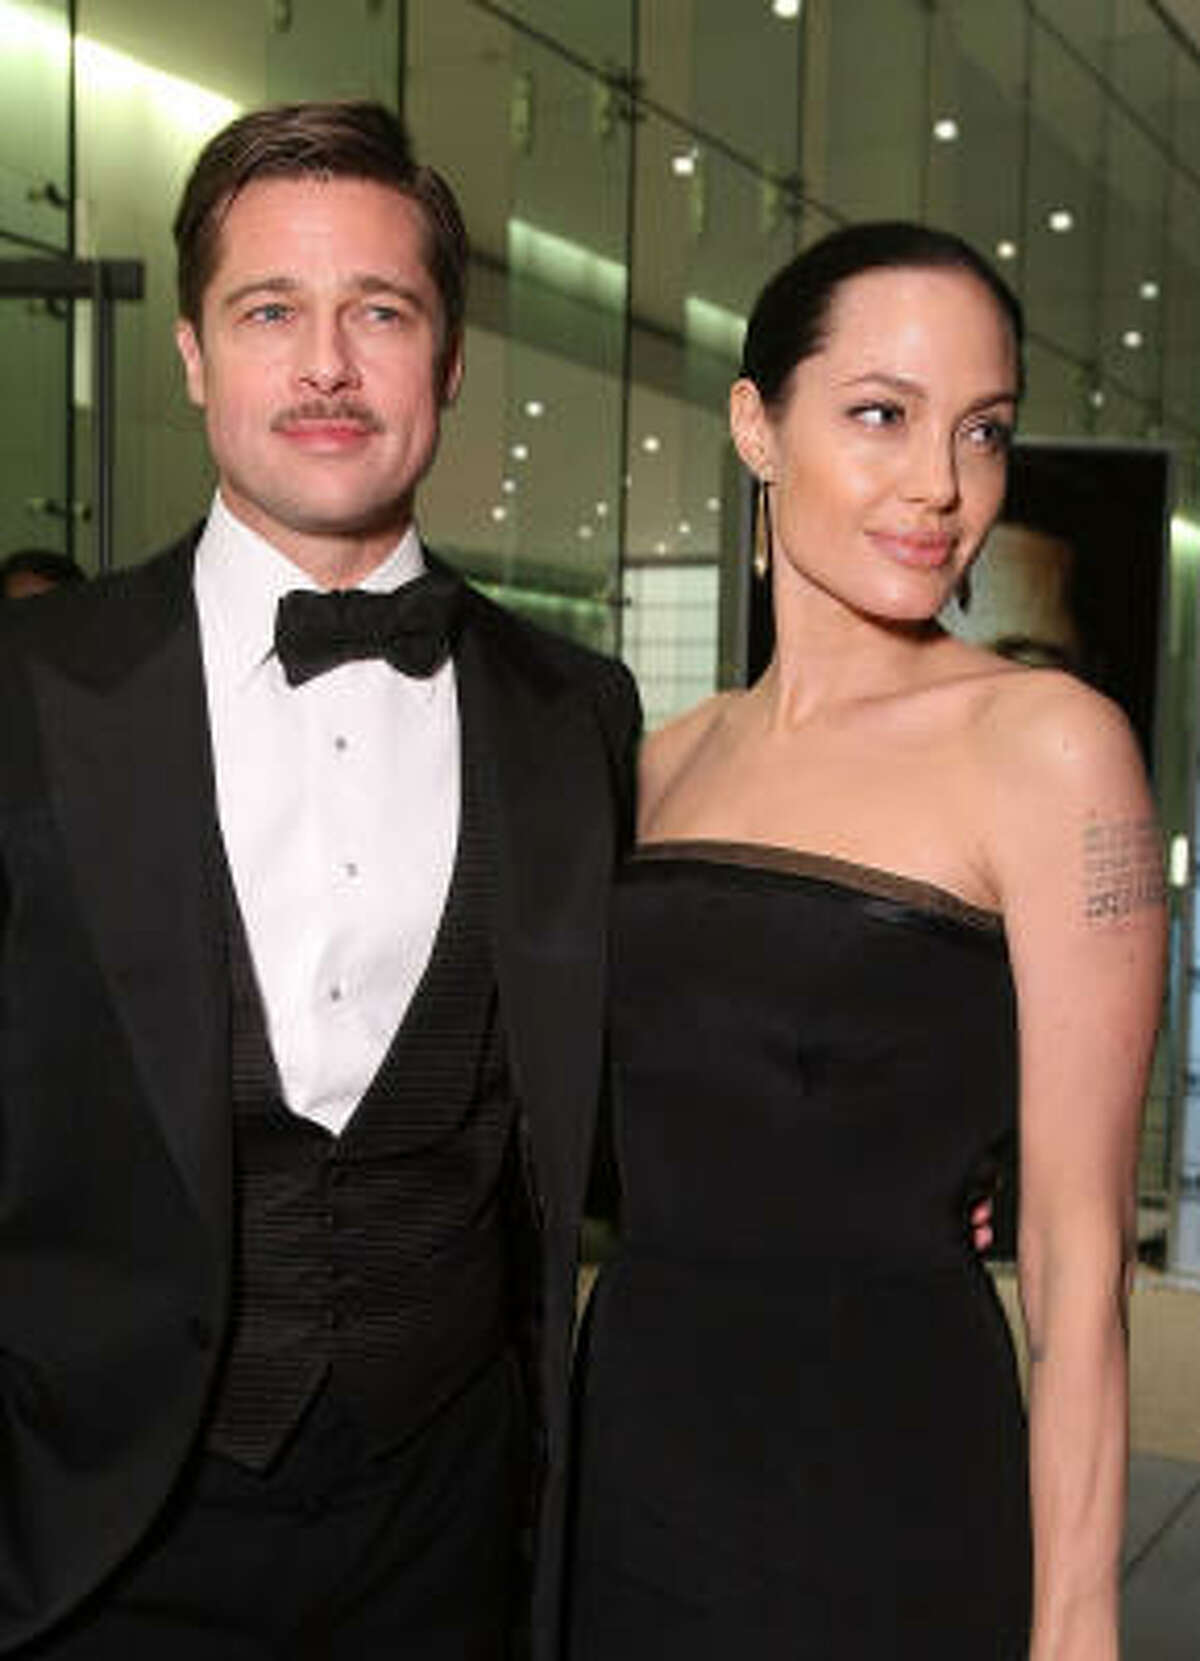 """Jolie revealed last year that she and Pitt fell in love on the set of the 2005 film """"Mr. & Mrs. Smith."""""""